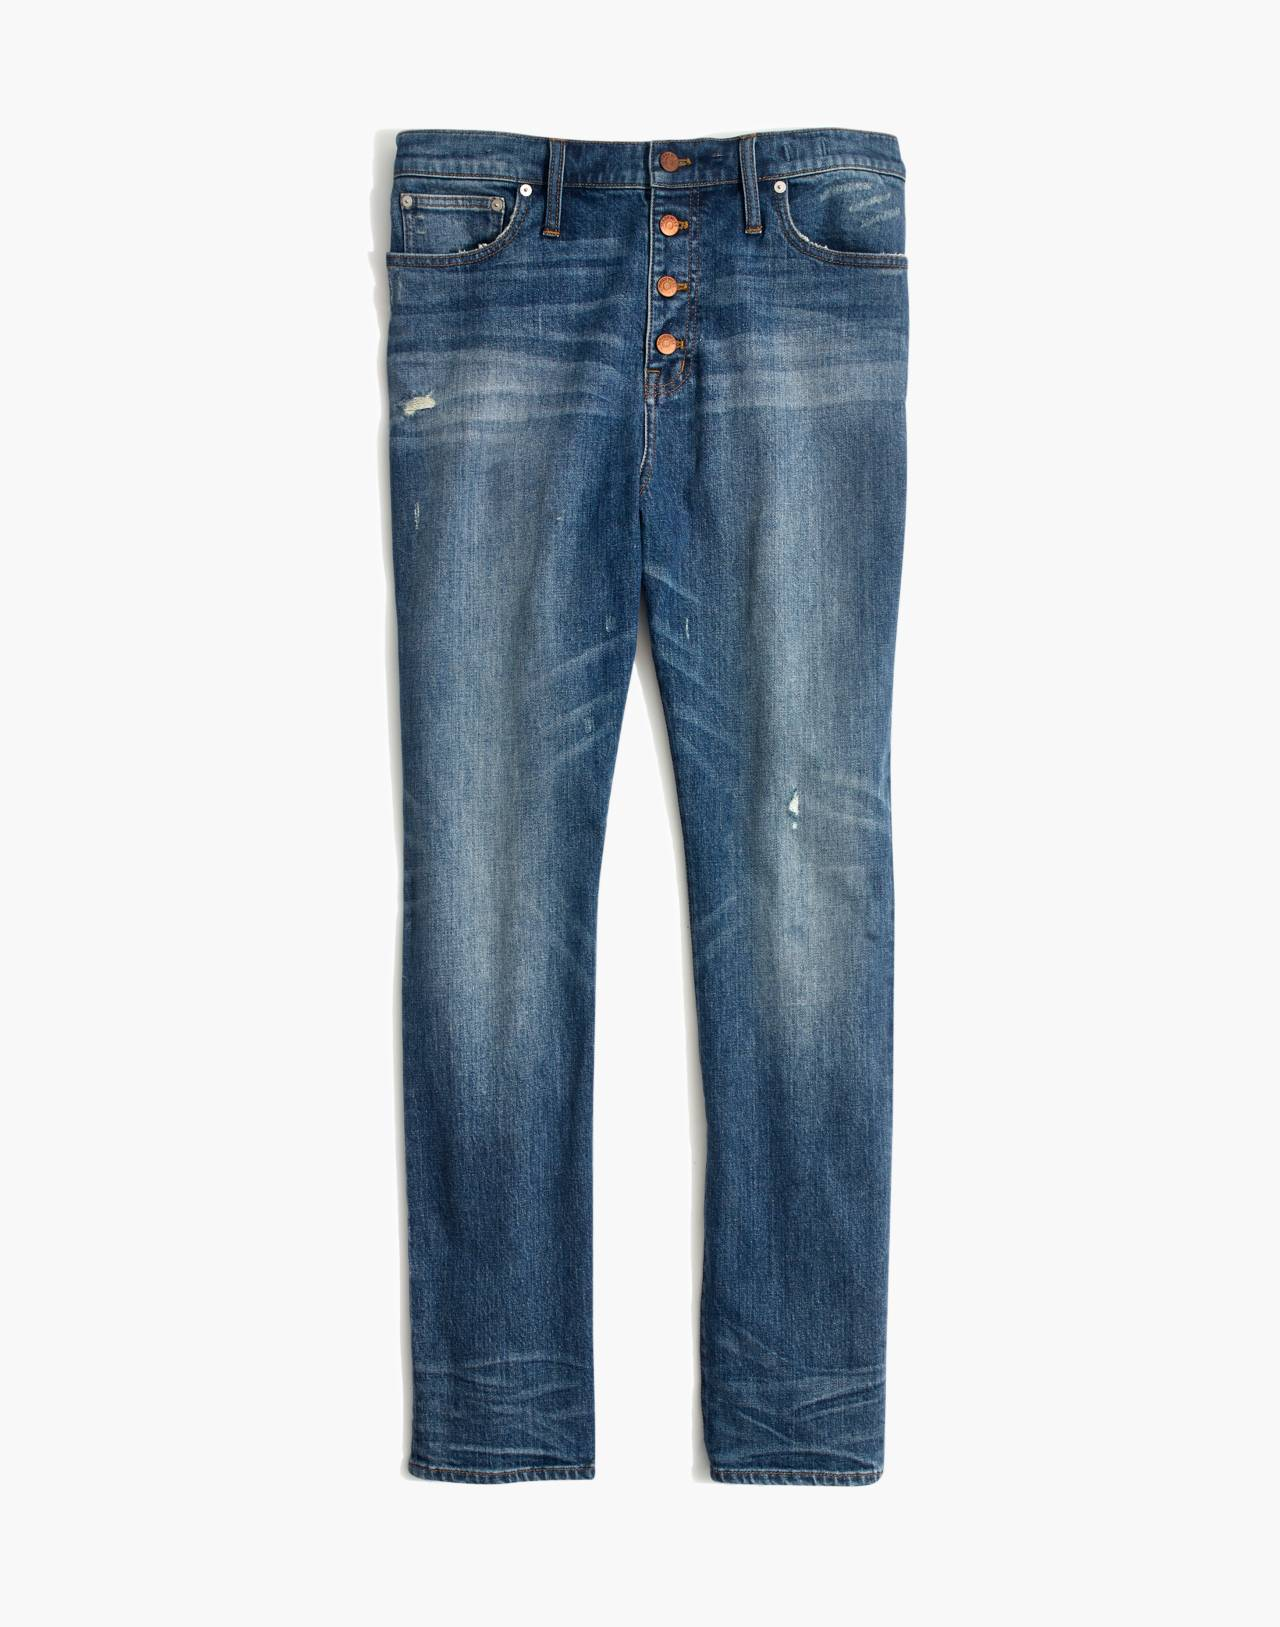 The Tall High-Rise Slim Boyjean in Hatfield Wash: Button-Front Edition in hatfield wash image 4